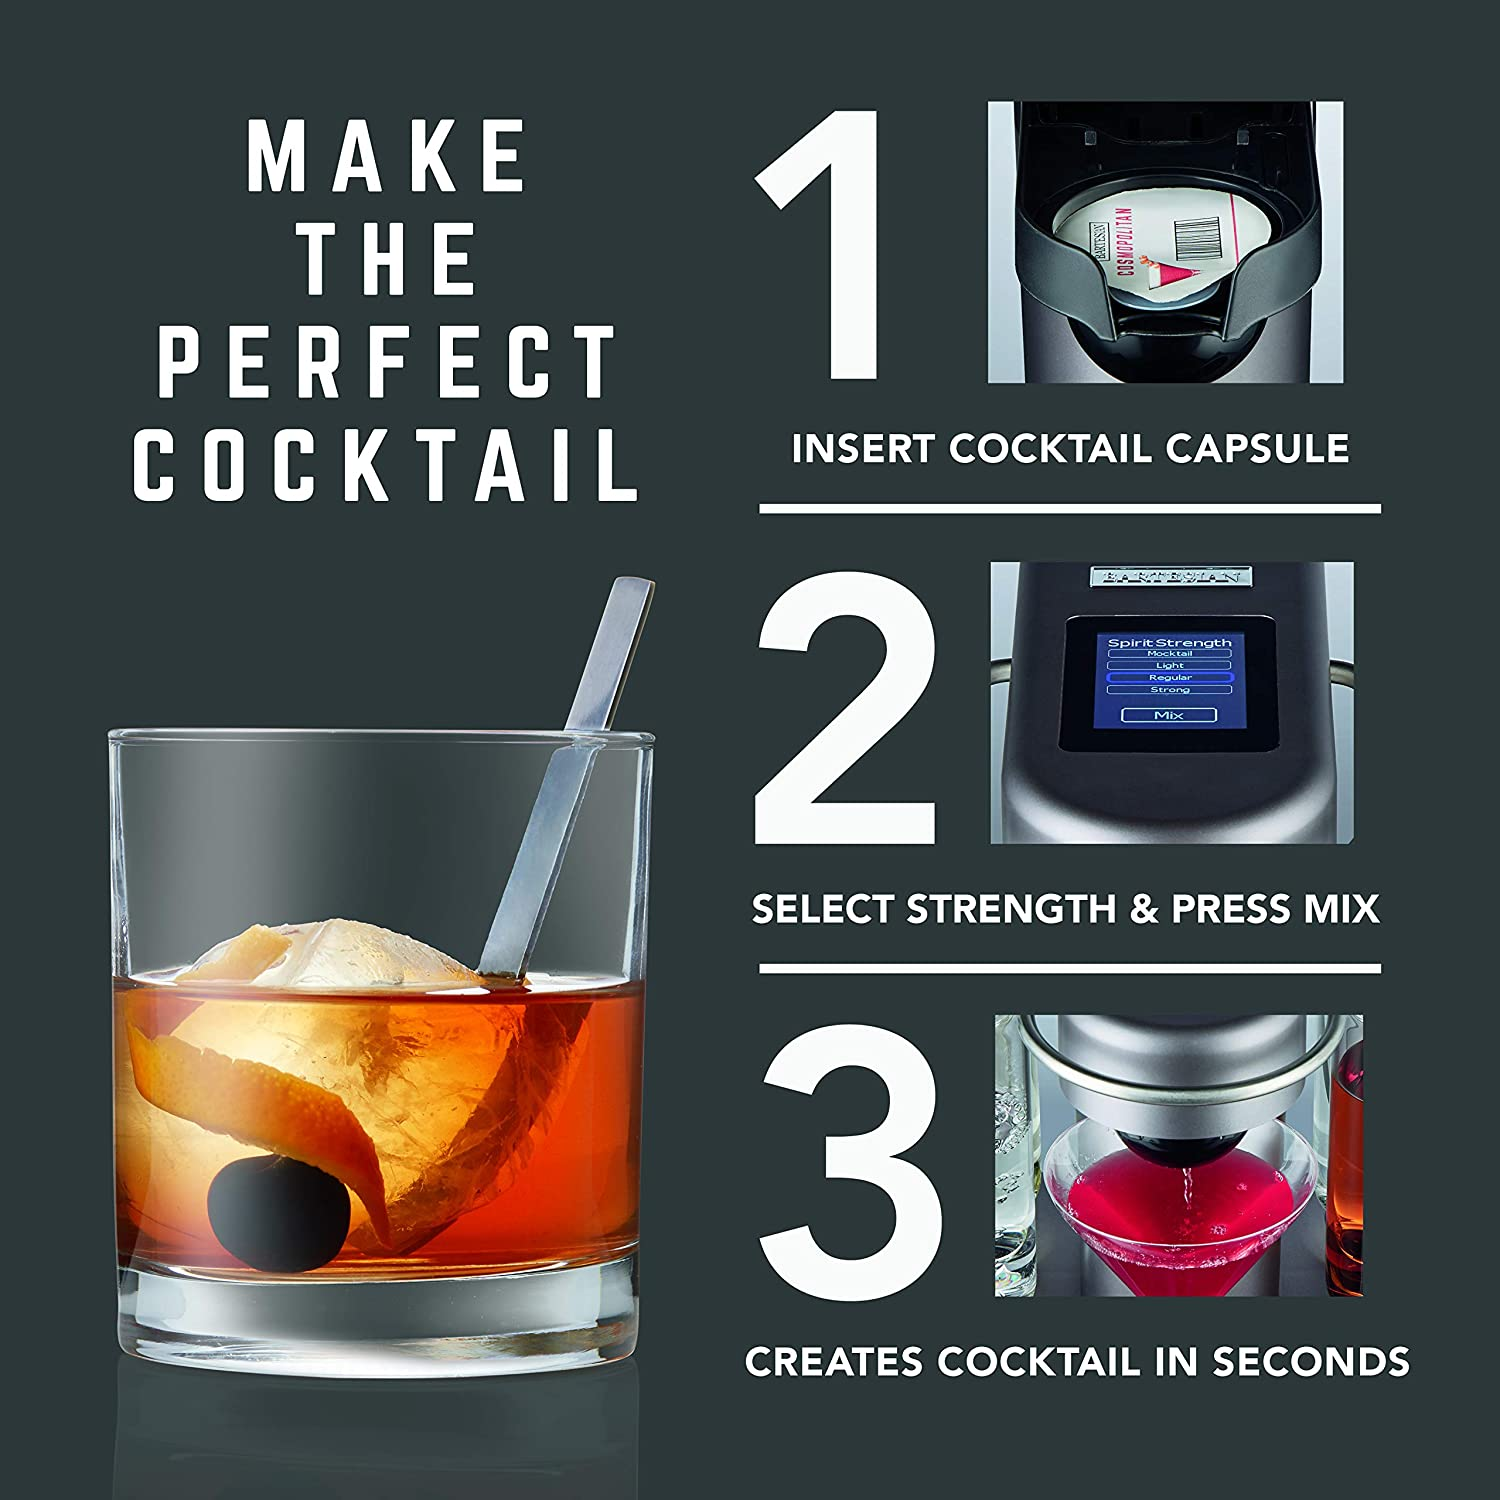 Make the perfect Cocktail